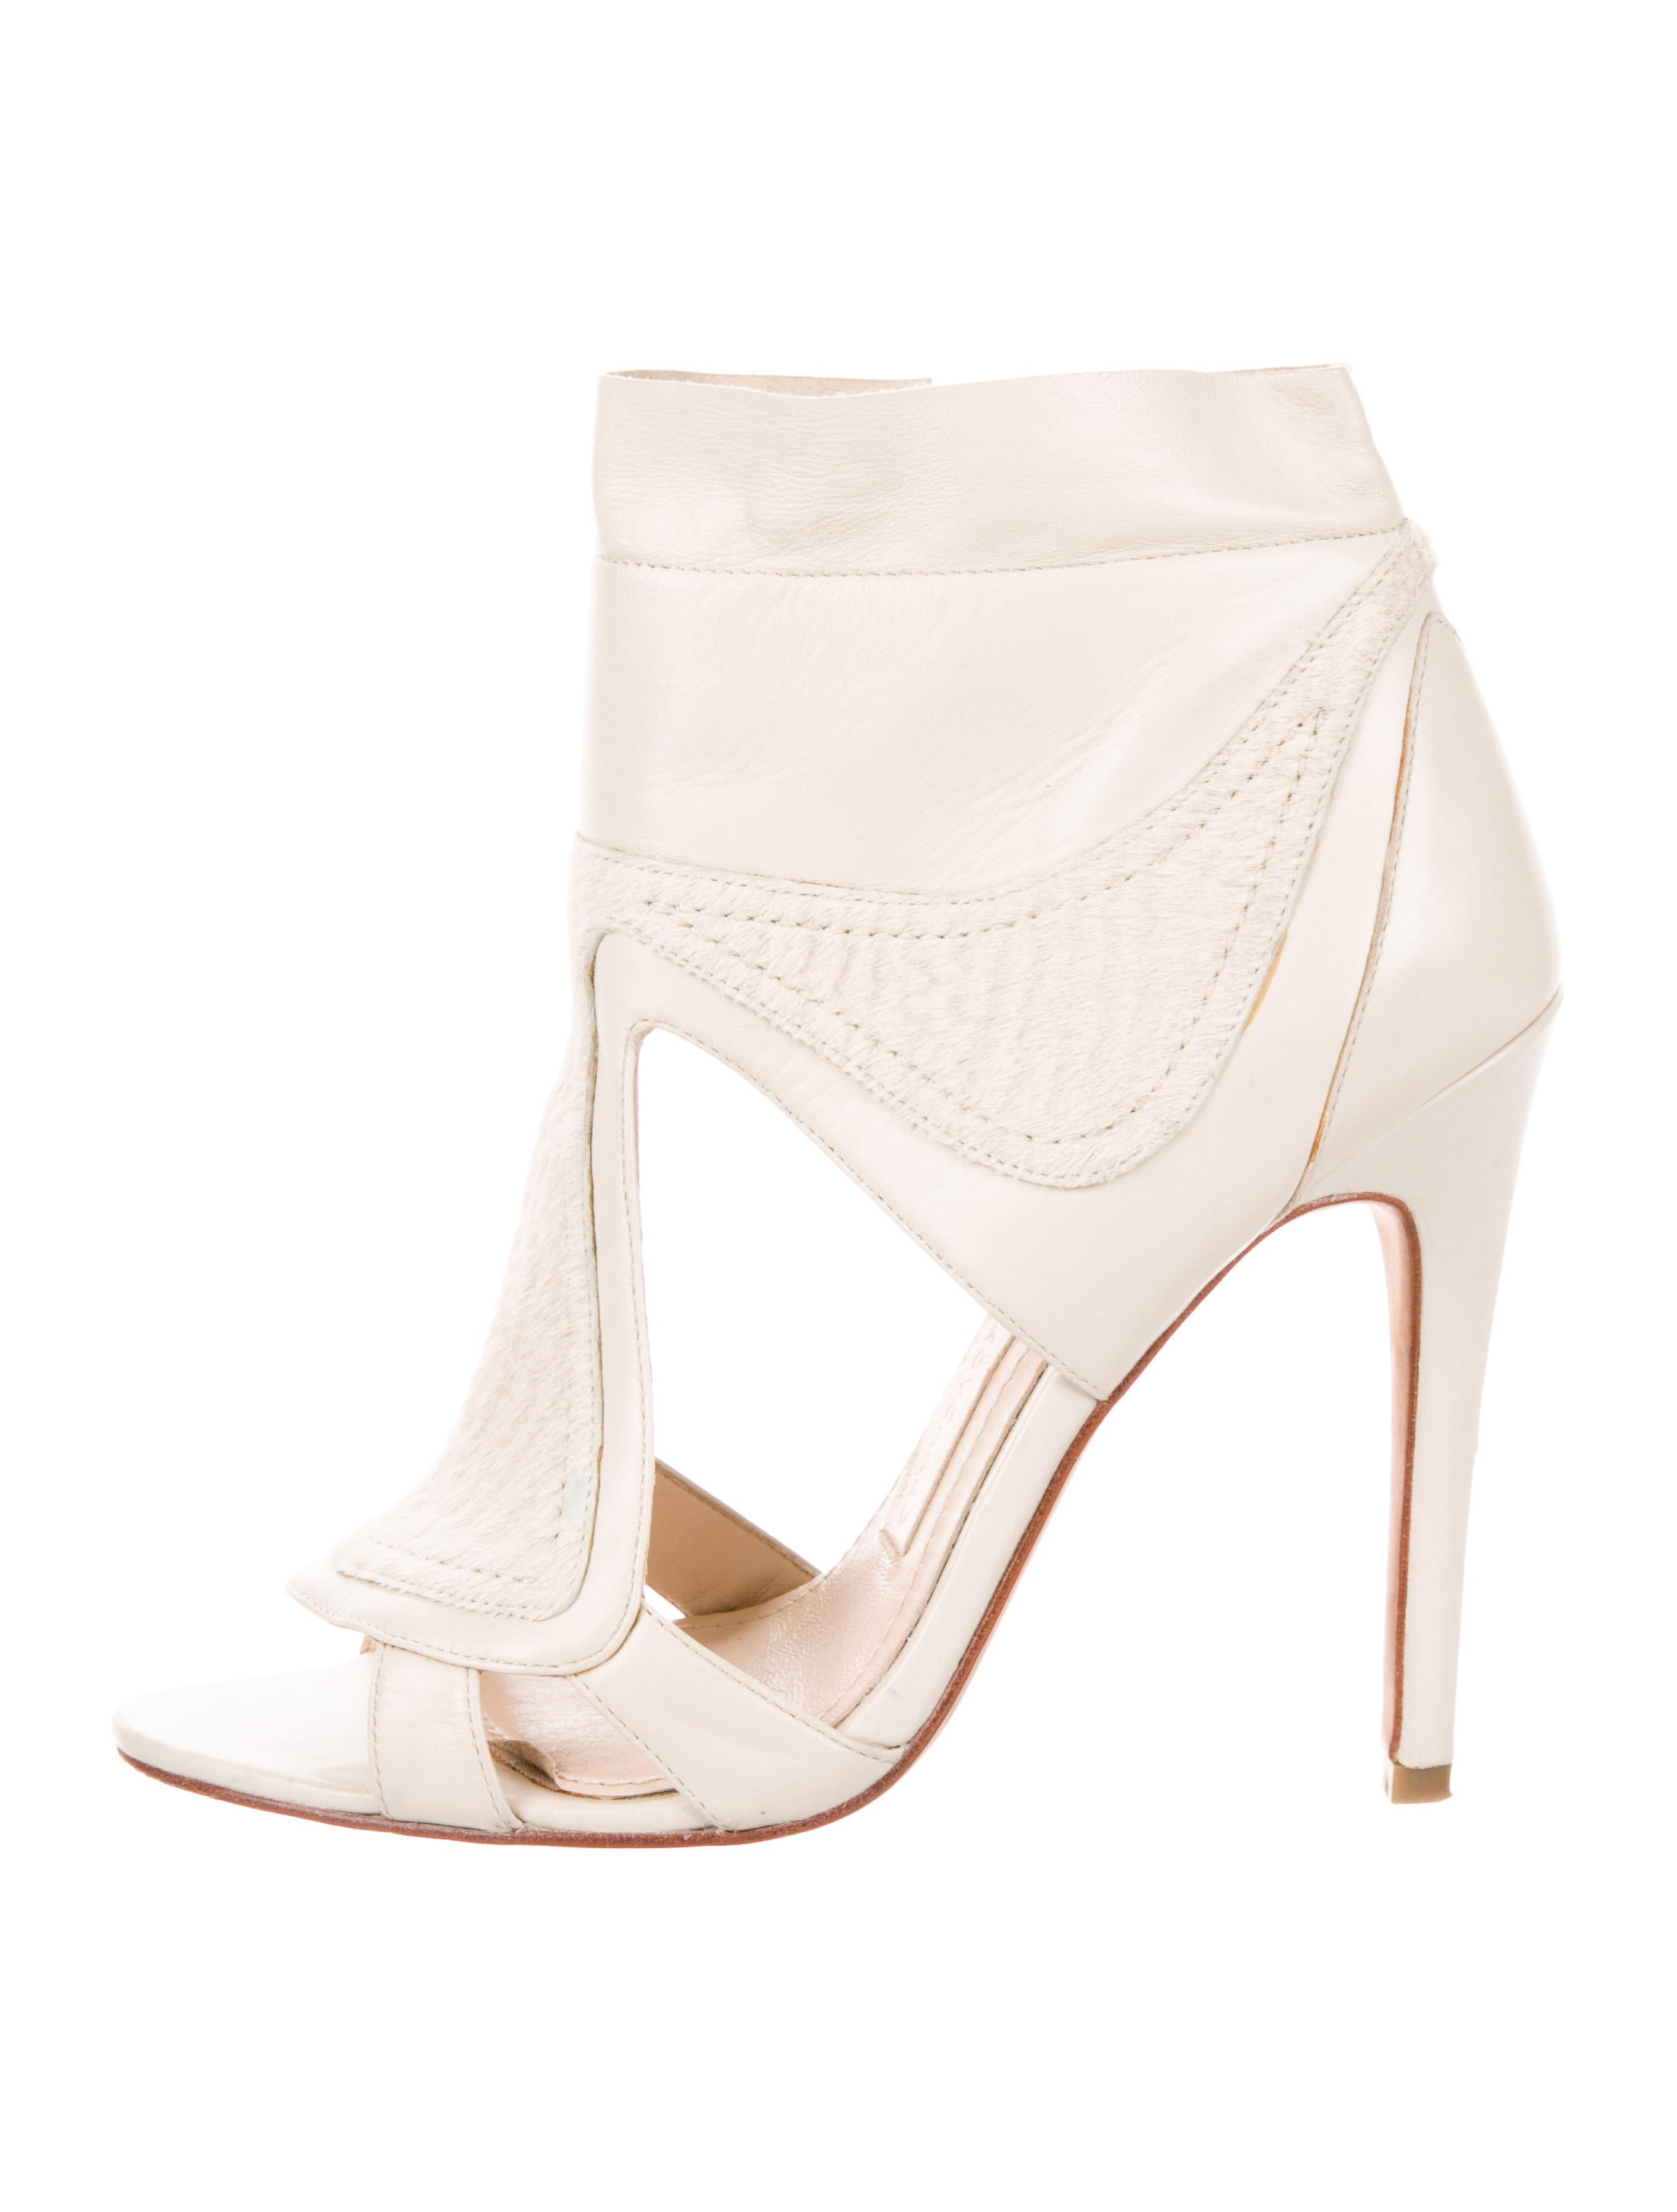 discount with mastercard Camilla Skovgaard Ponyhair-Accented Cutout Booties sale marketable clearance cheap price visit cheap online skEVE